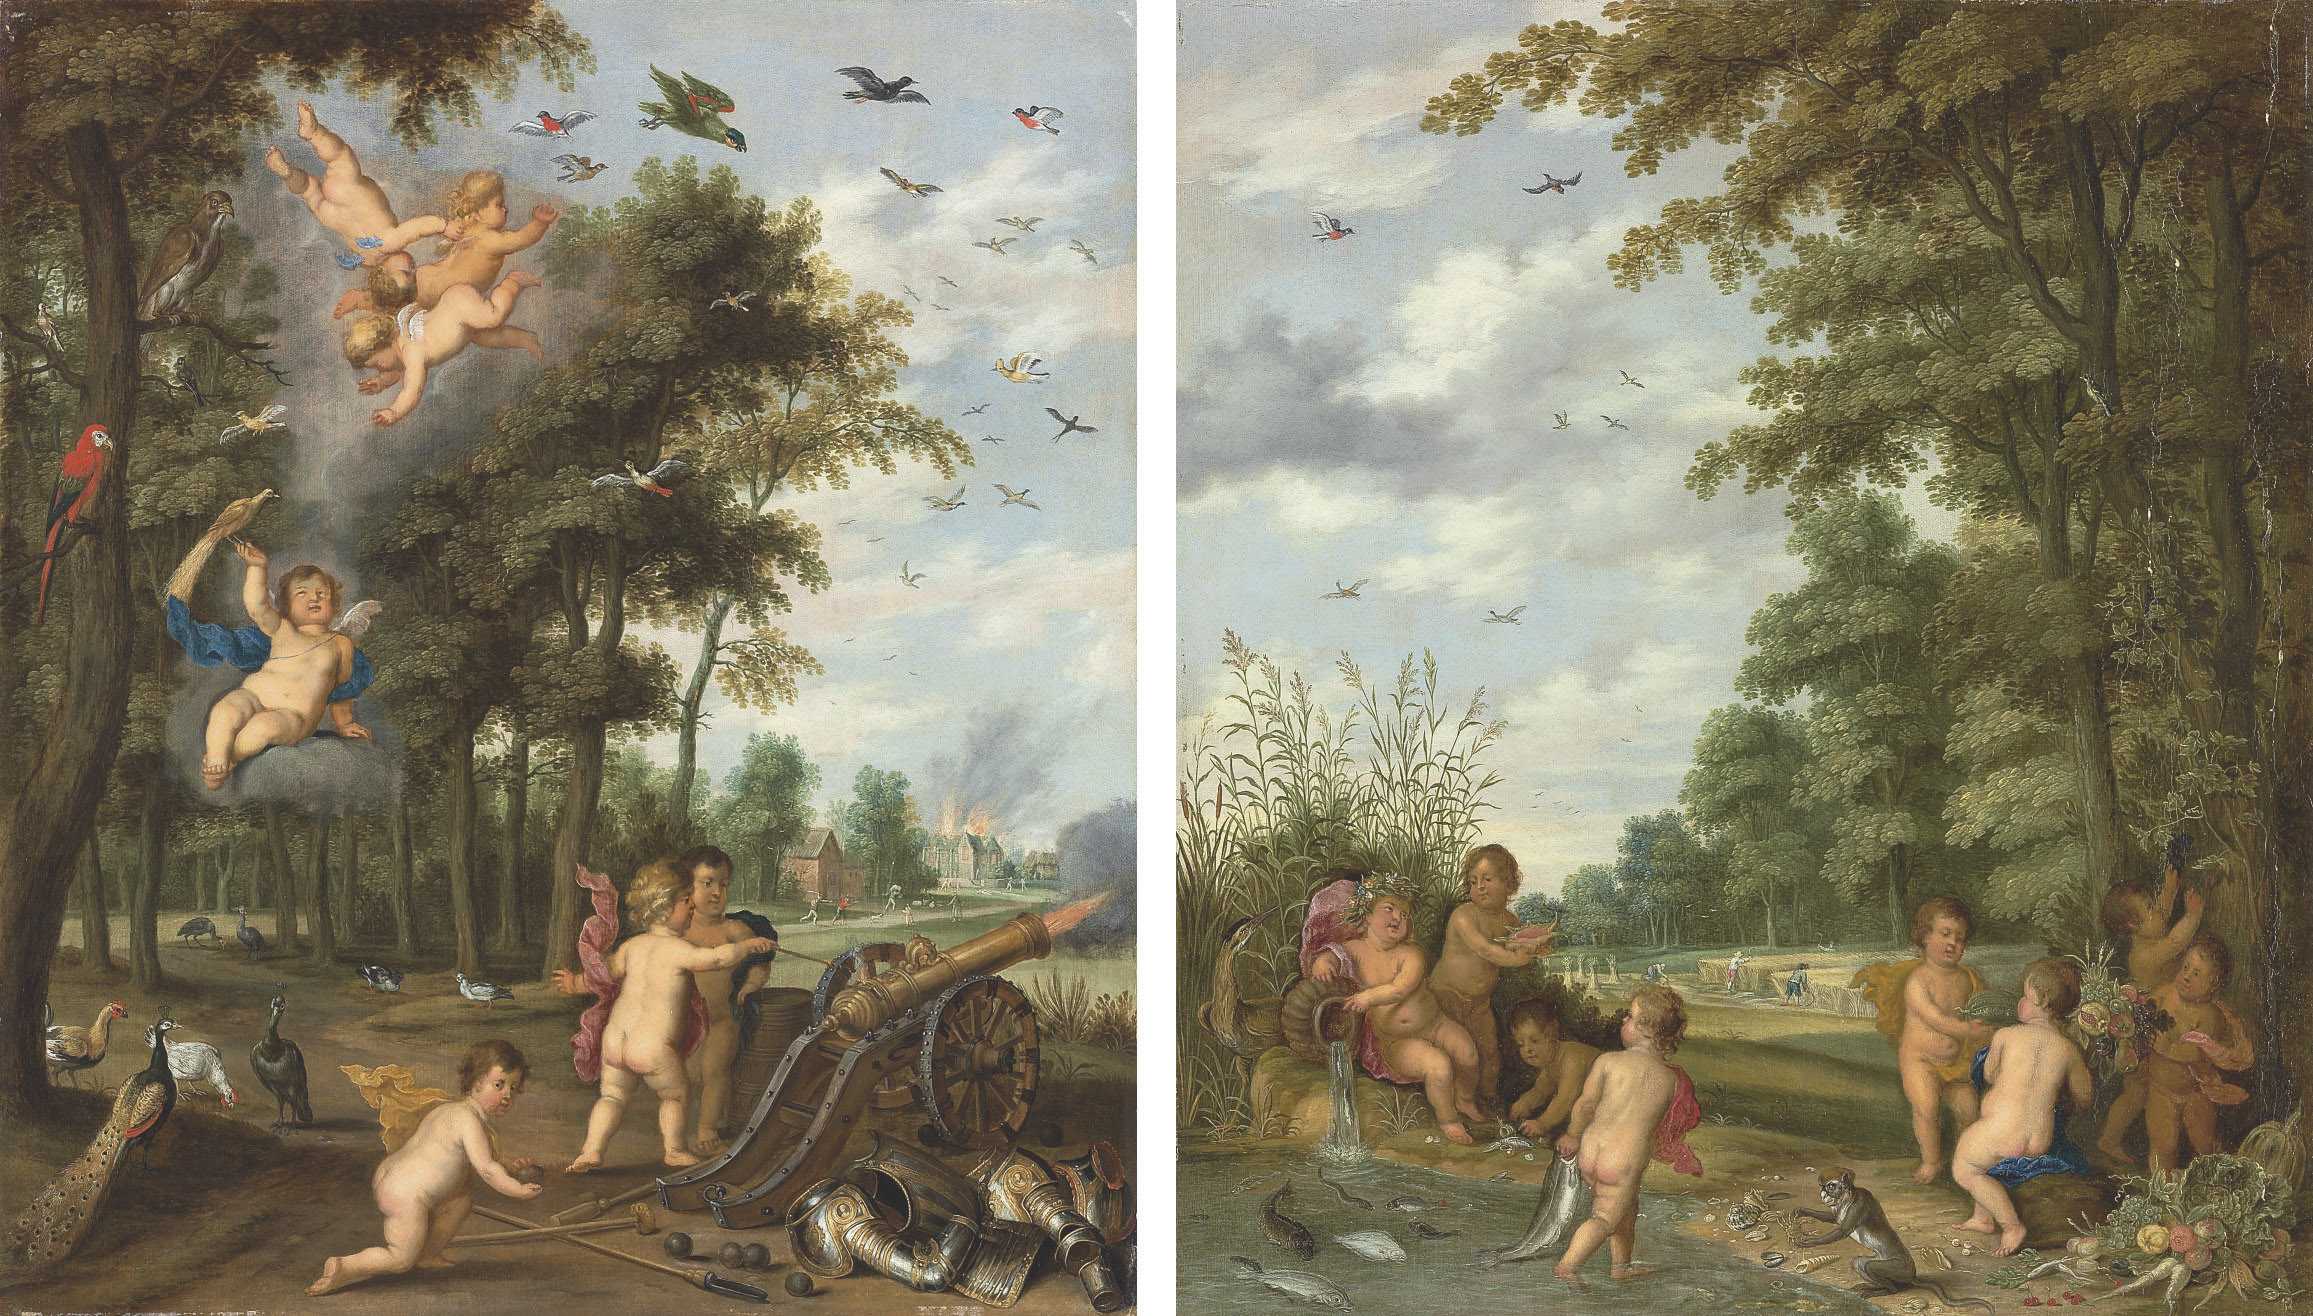 The Four Elements: An Allegory of Earth and Water; and An Allegory of Air and Fire